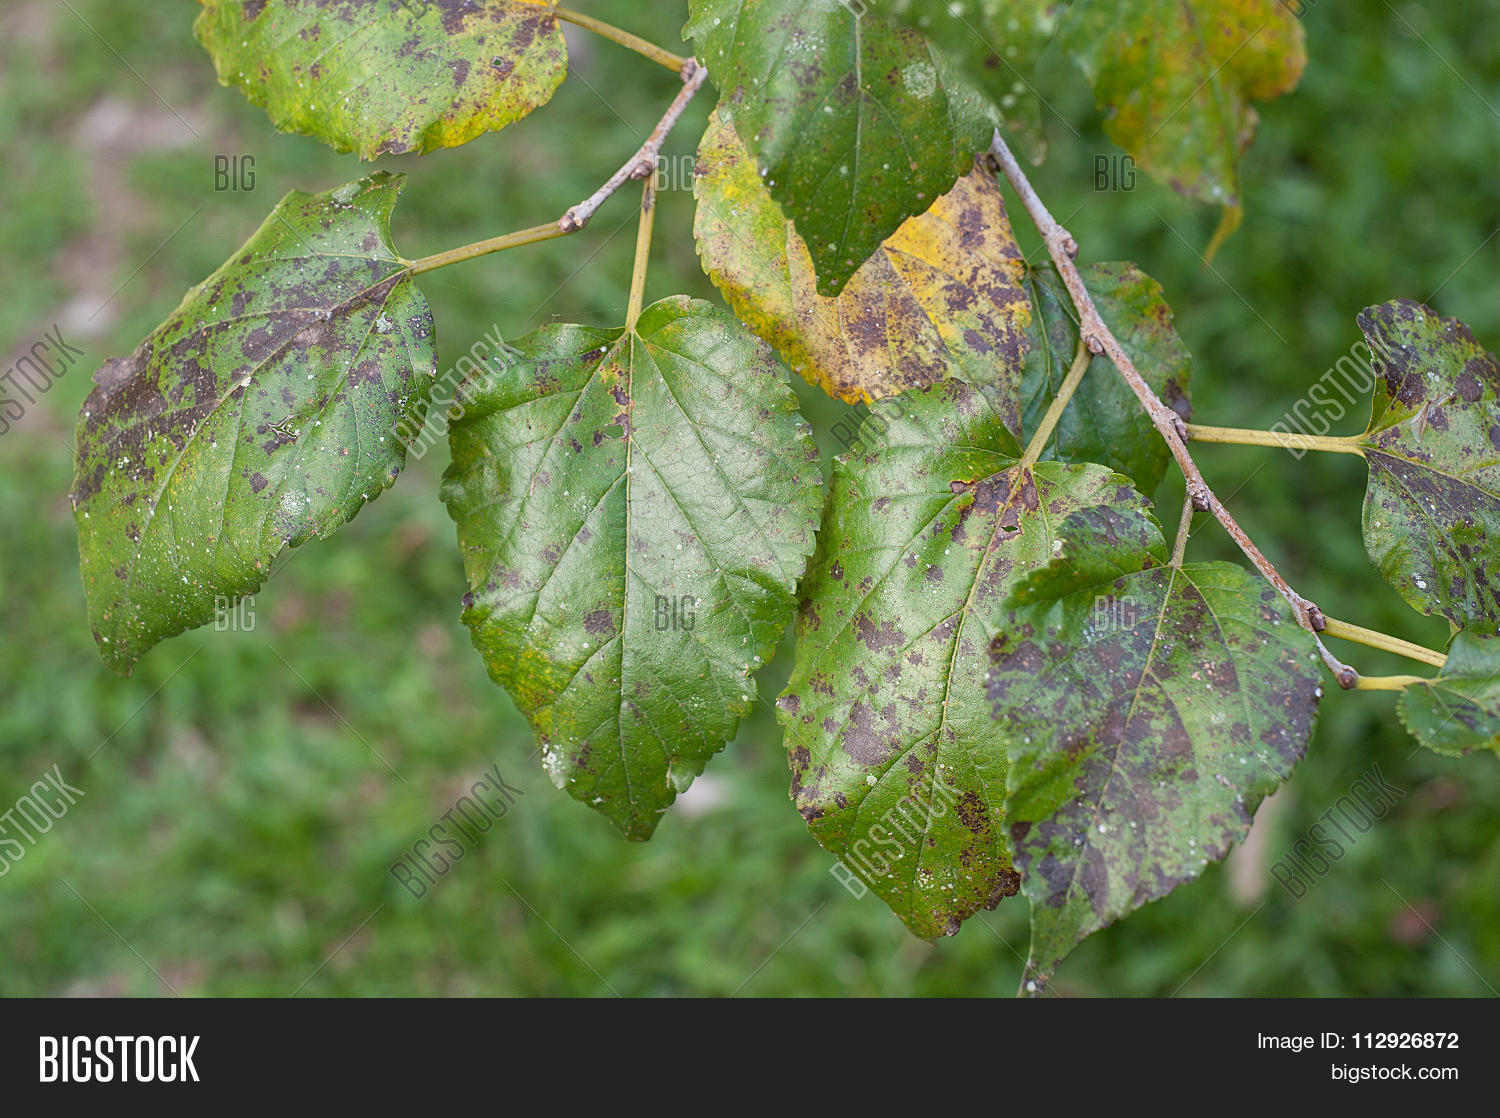 Plant Disease Image Photo Free Trial Bigstock